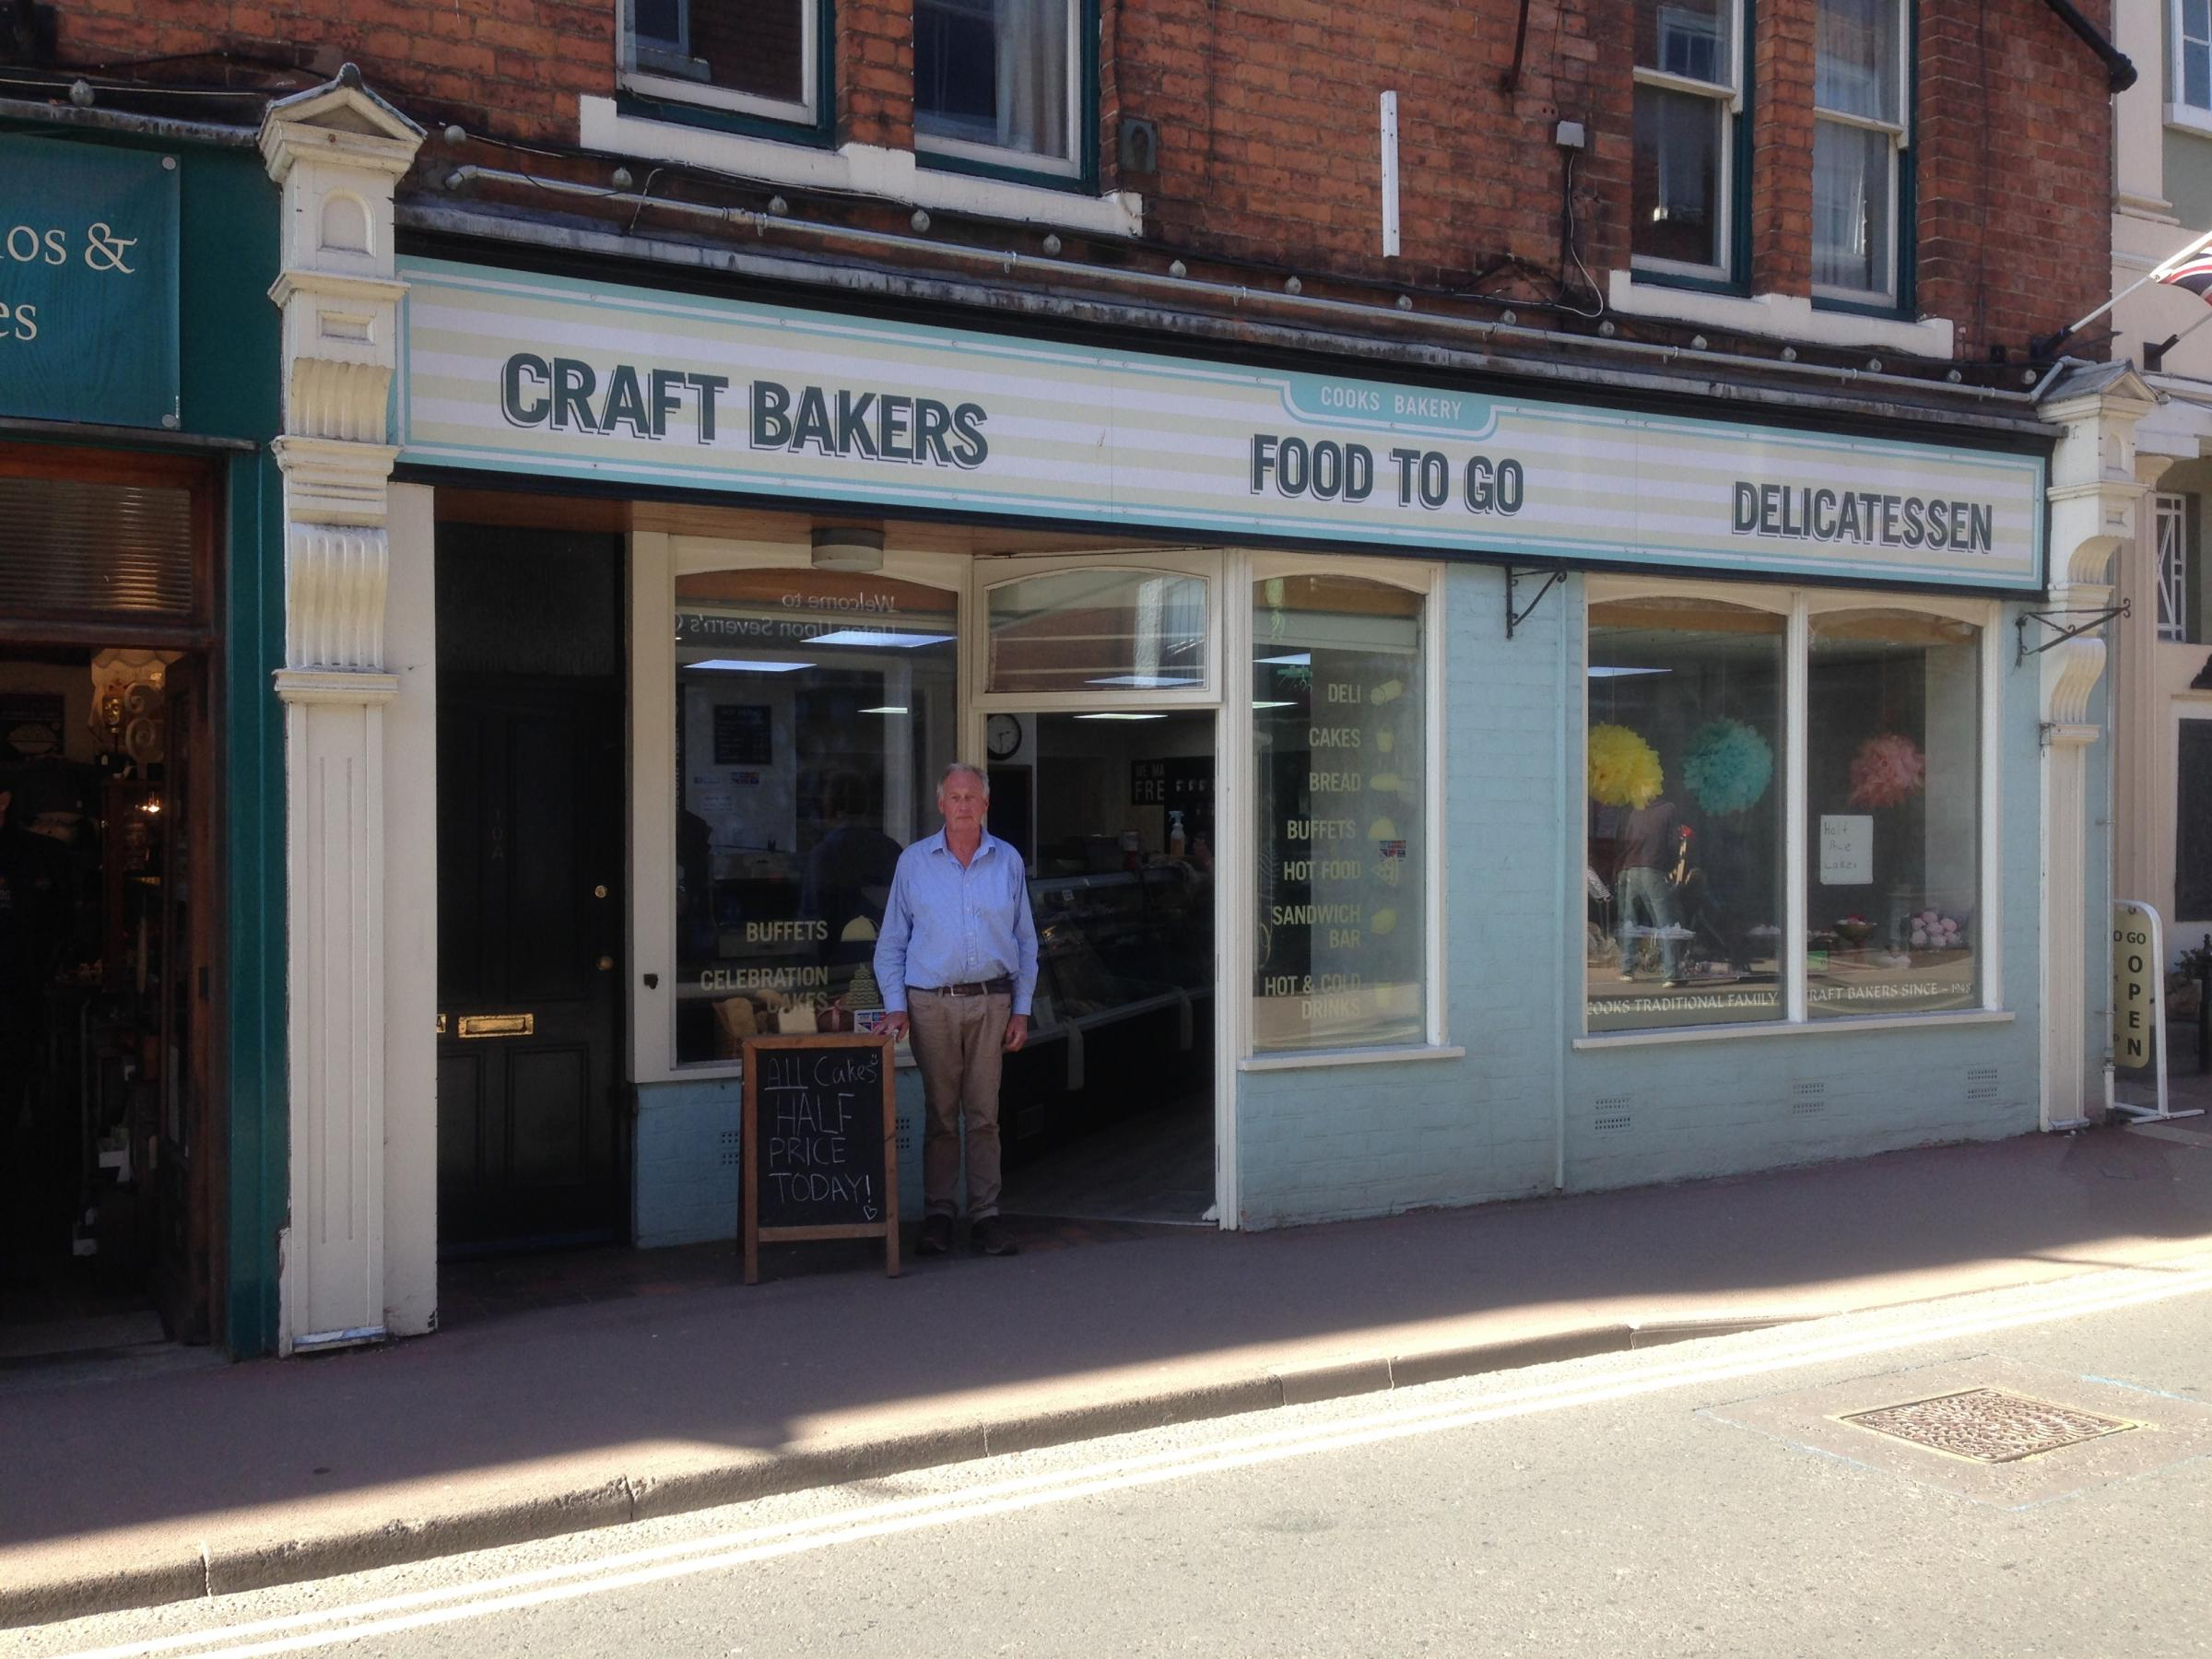 CLOSED: Peter Maiden, owner of Cooks Bakery, outside his shop in Old Street, Upton